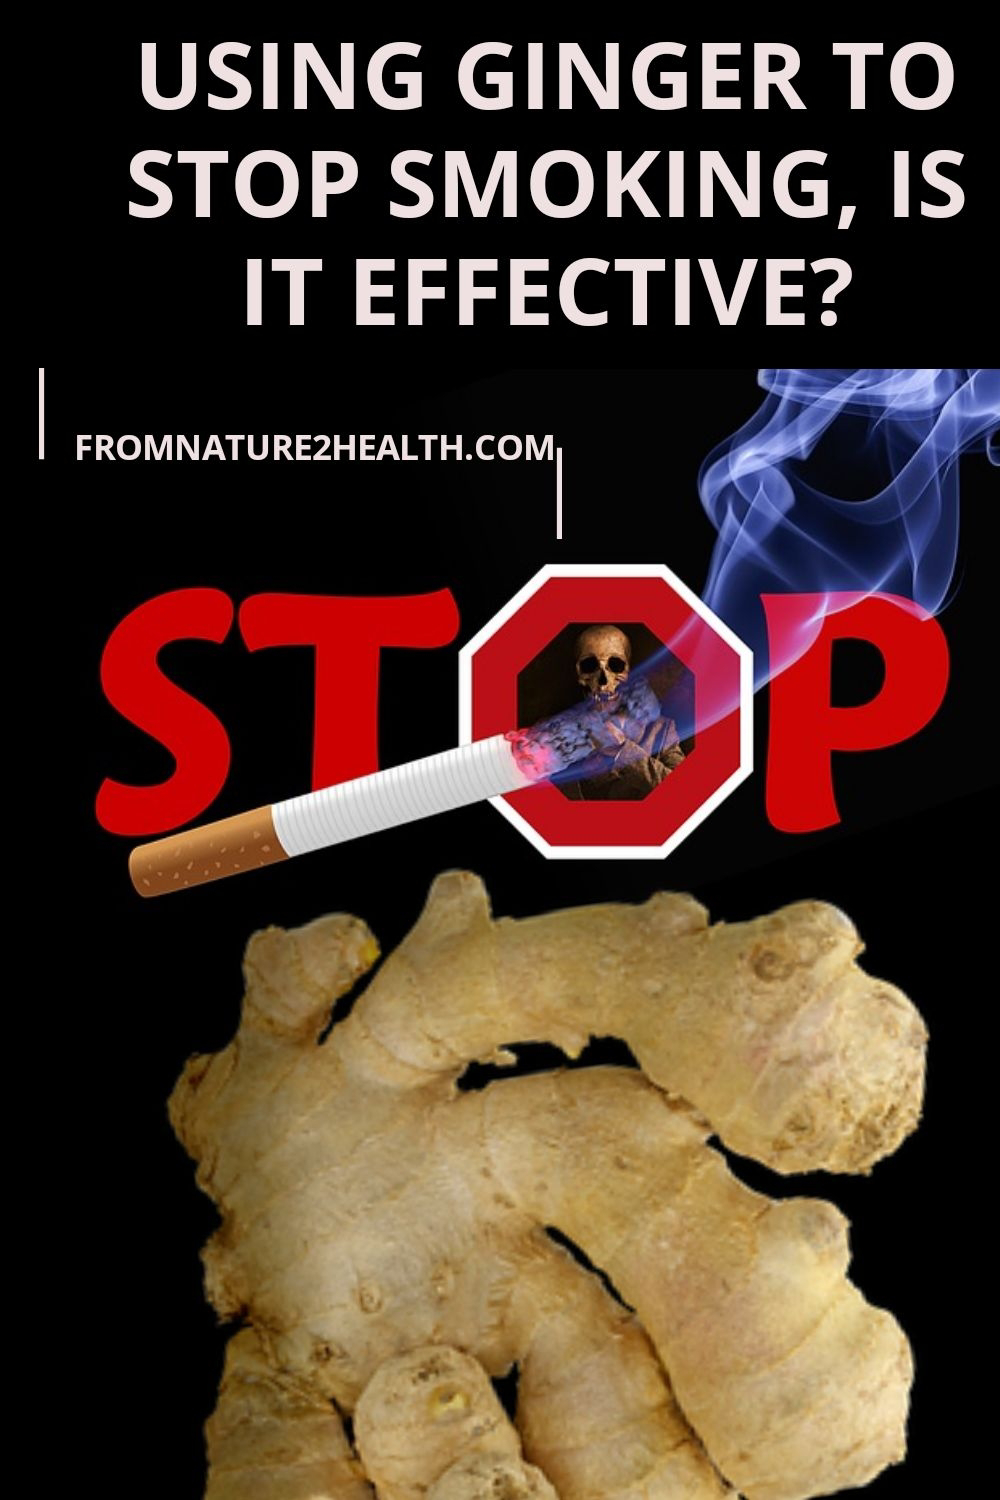 Why do you need to consider the benefits of ginger to stop smoking?